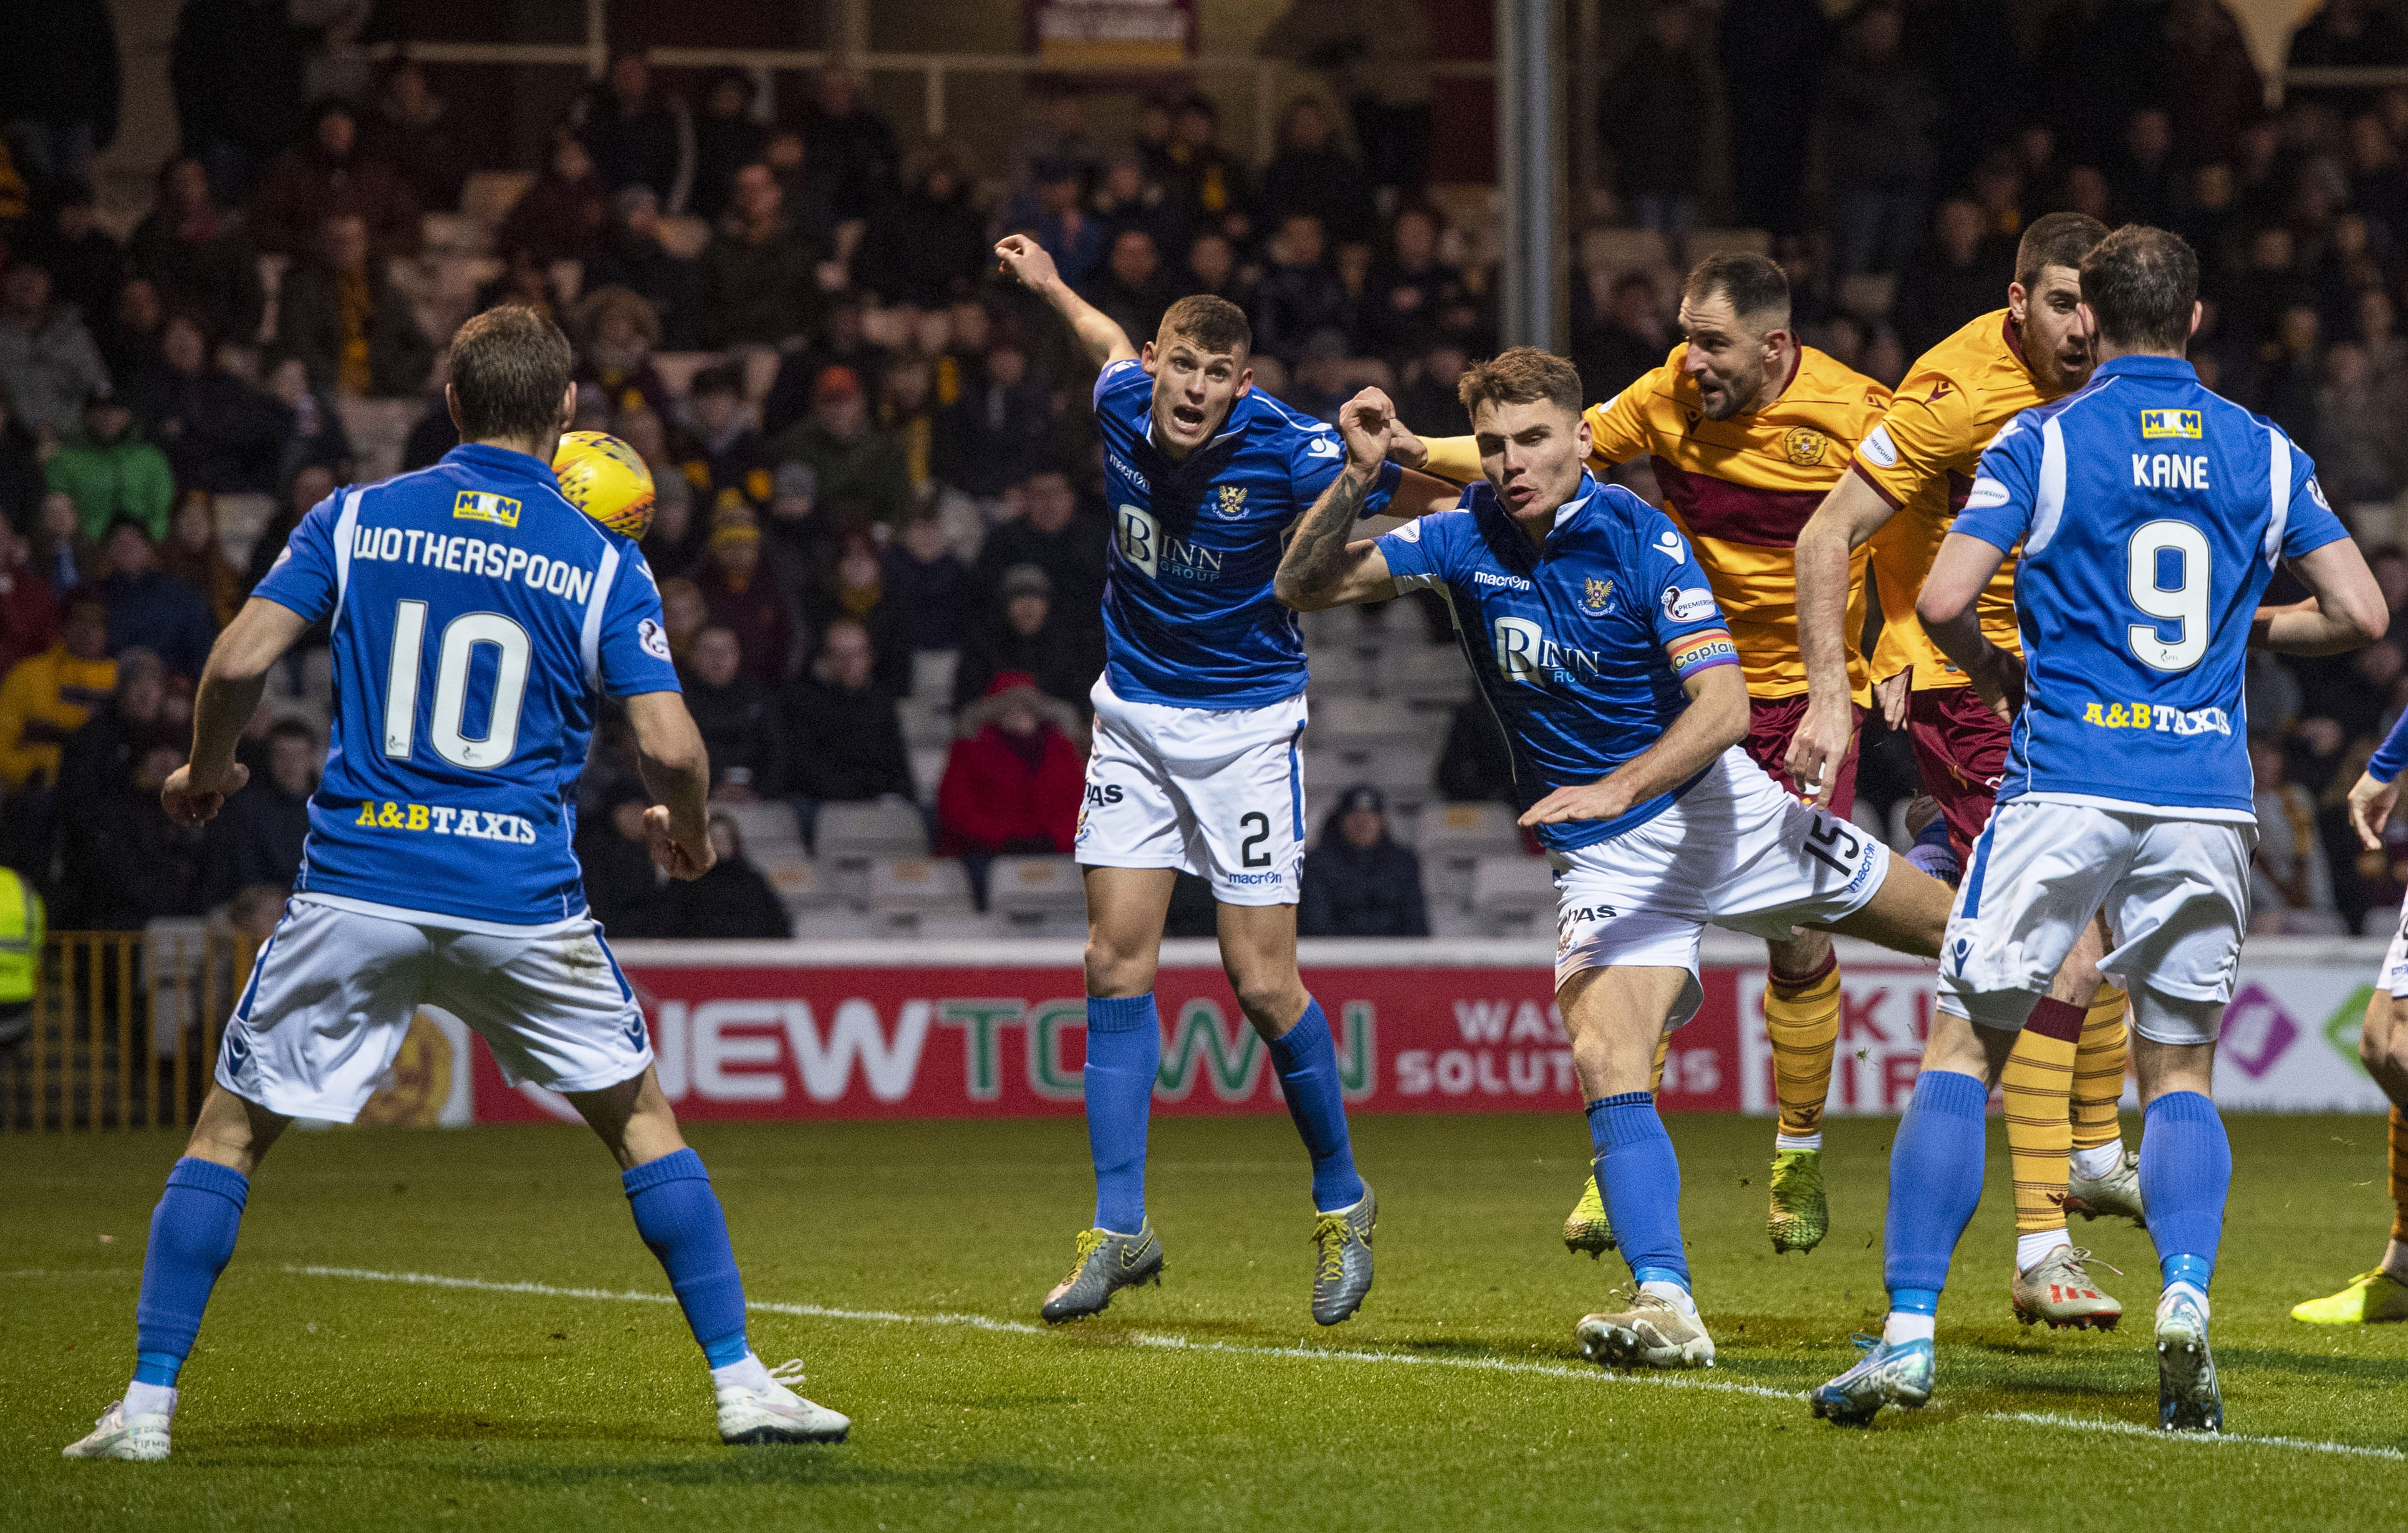 Motherwell's second goal.